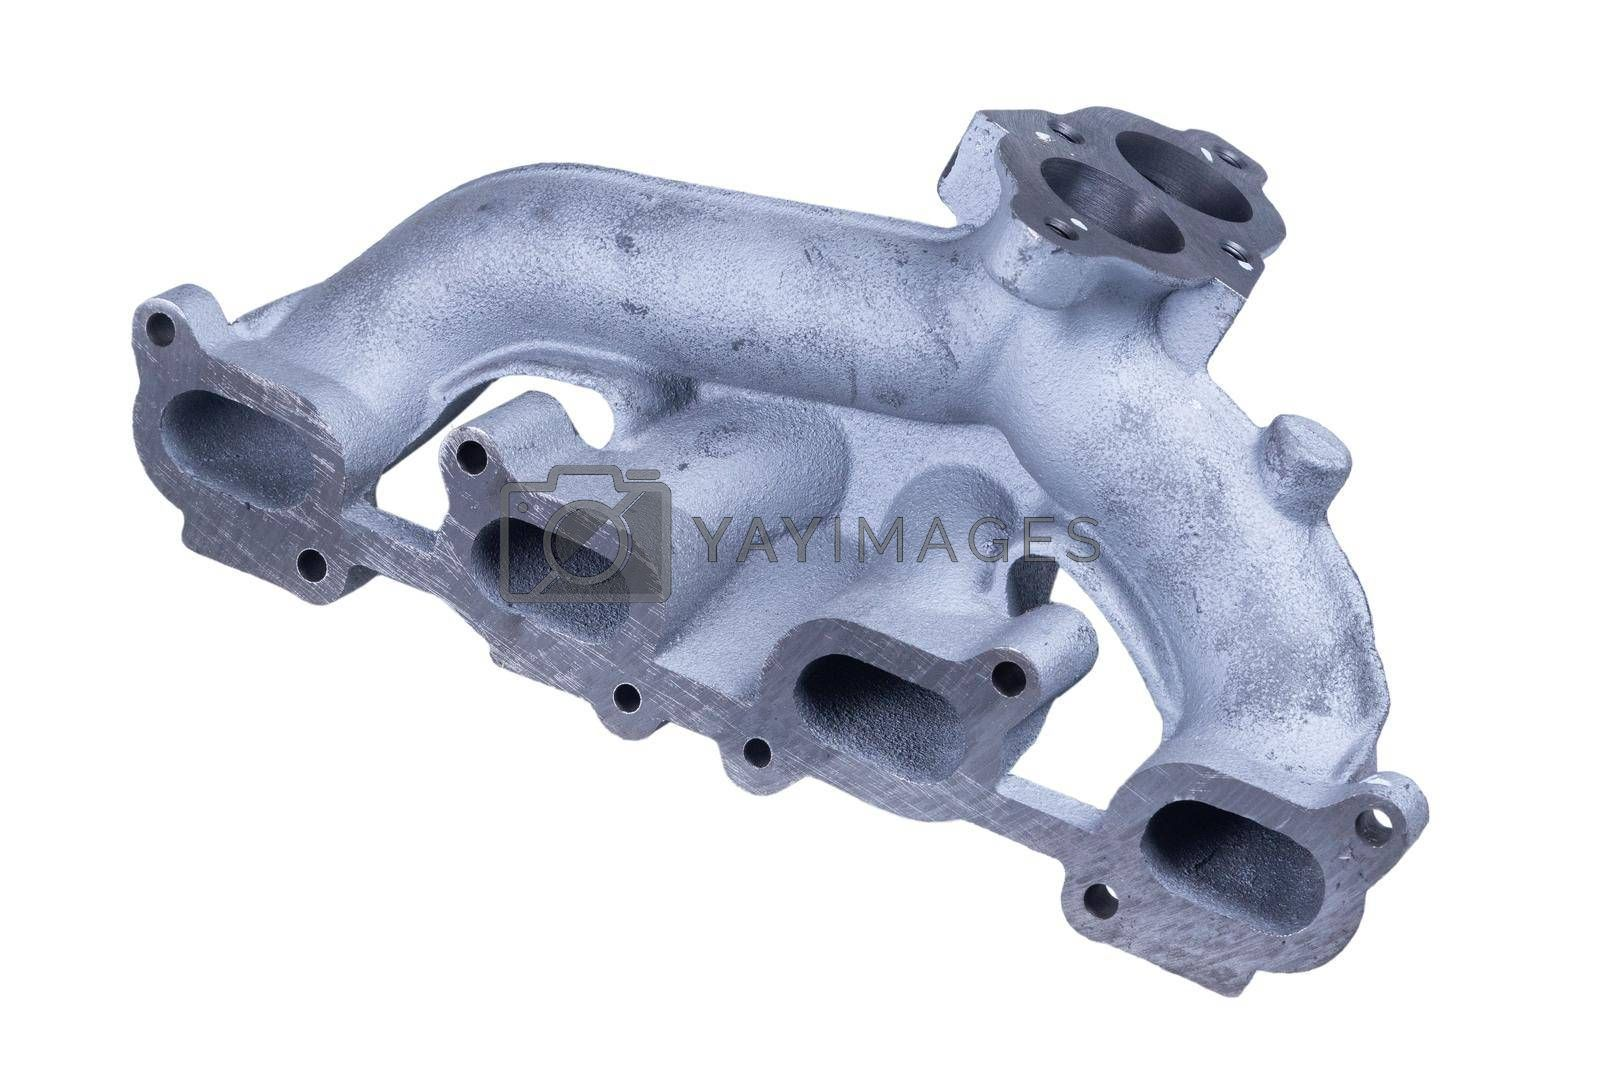 new car engine intake side receiver isolated on white background